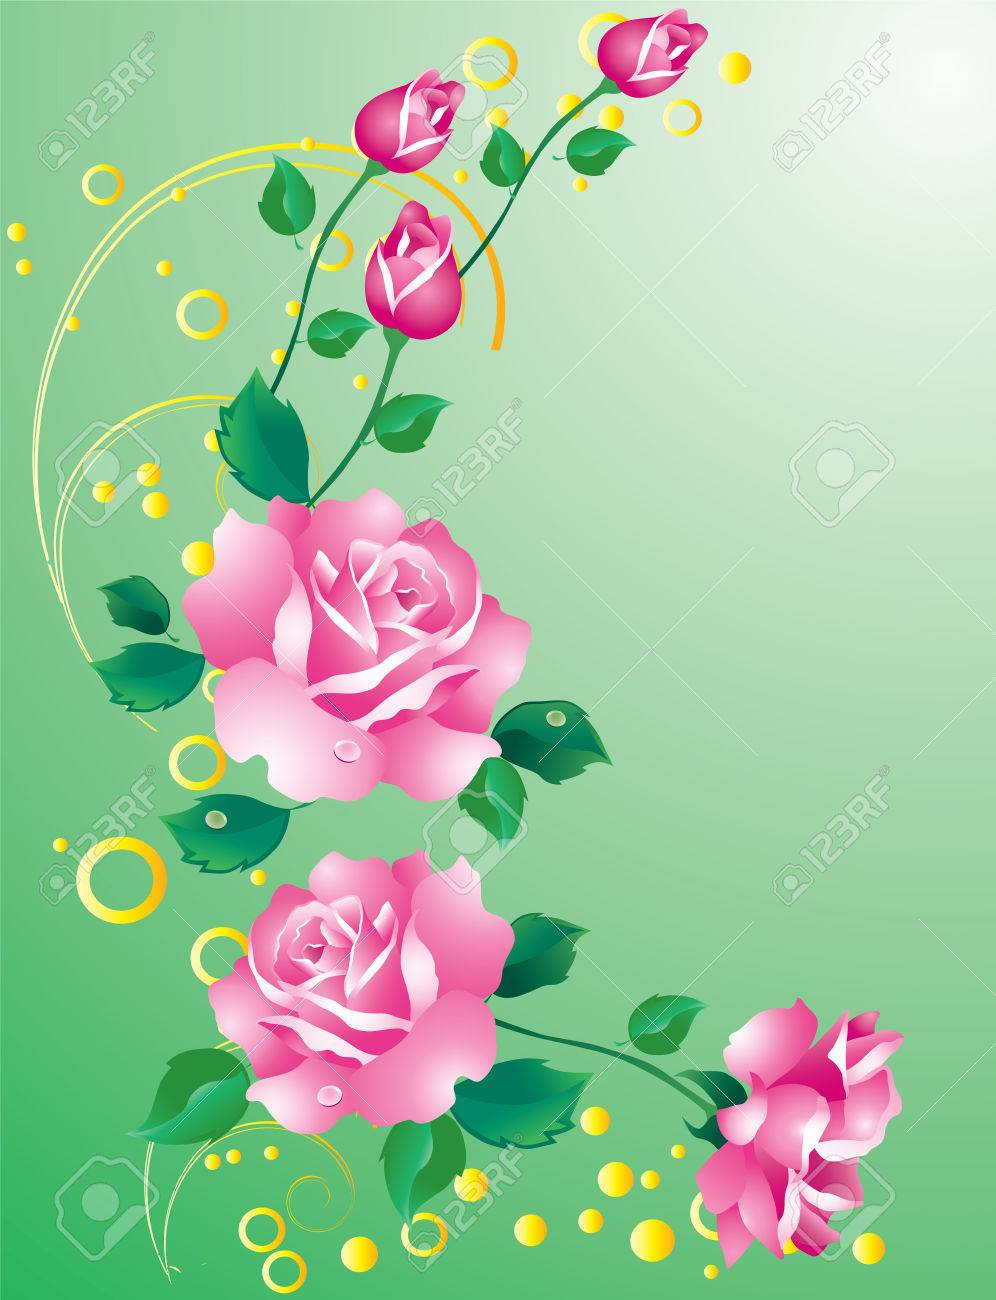 4a4b76b9c430 Abstract background with ornaments and pink roses Stock Vector - 8802244